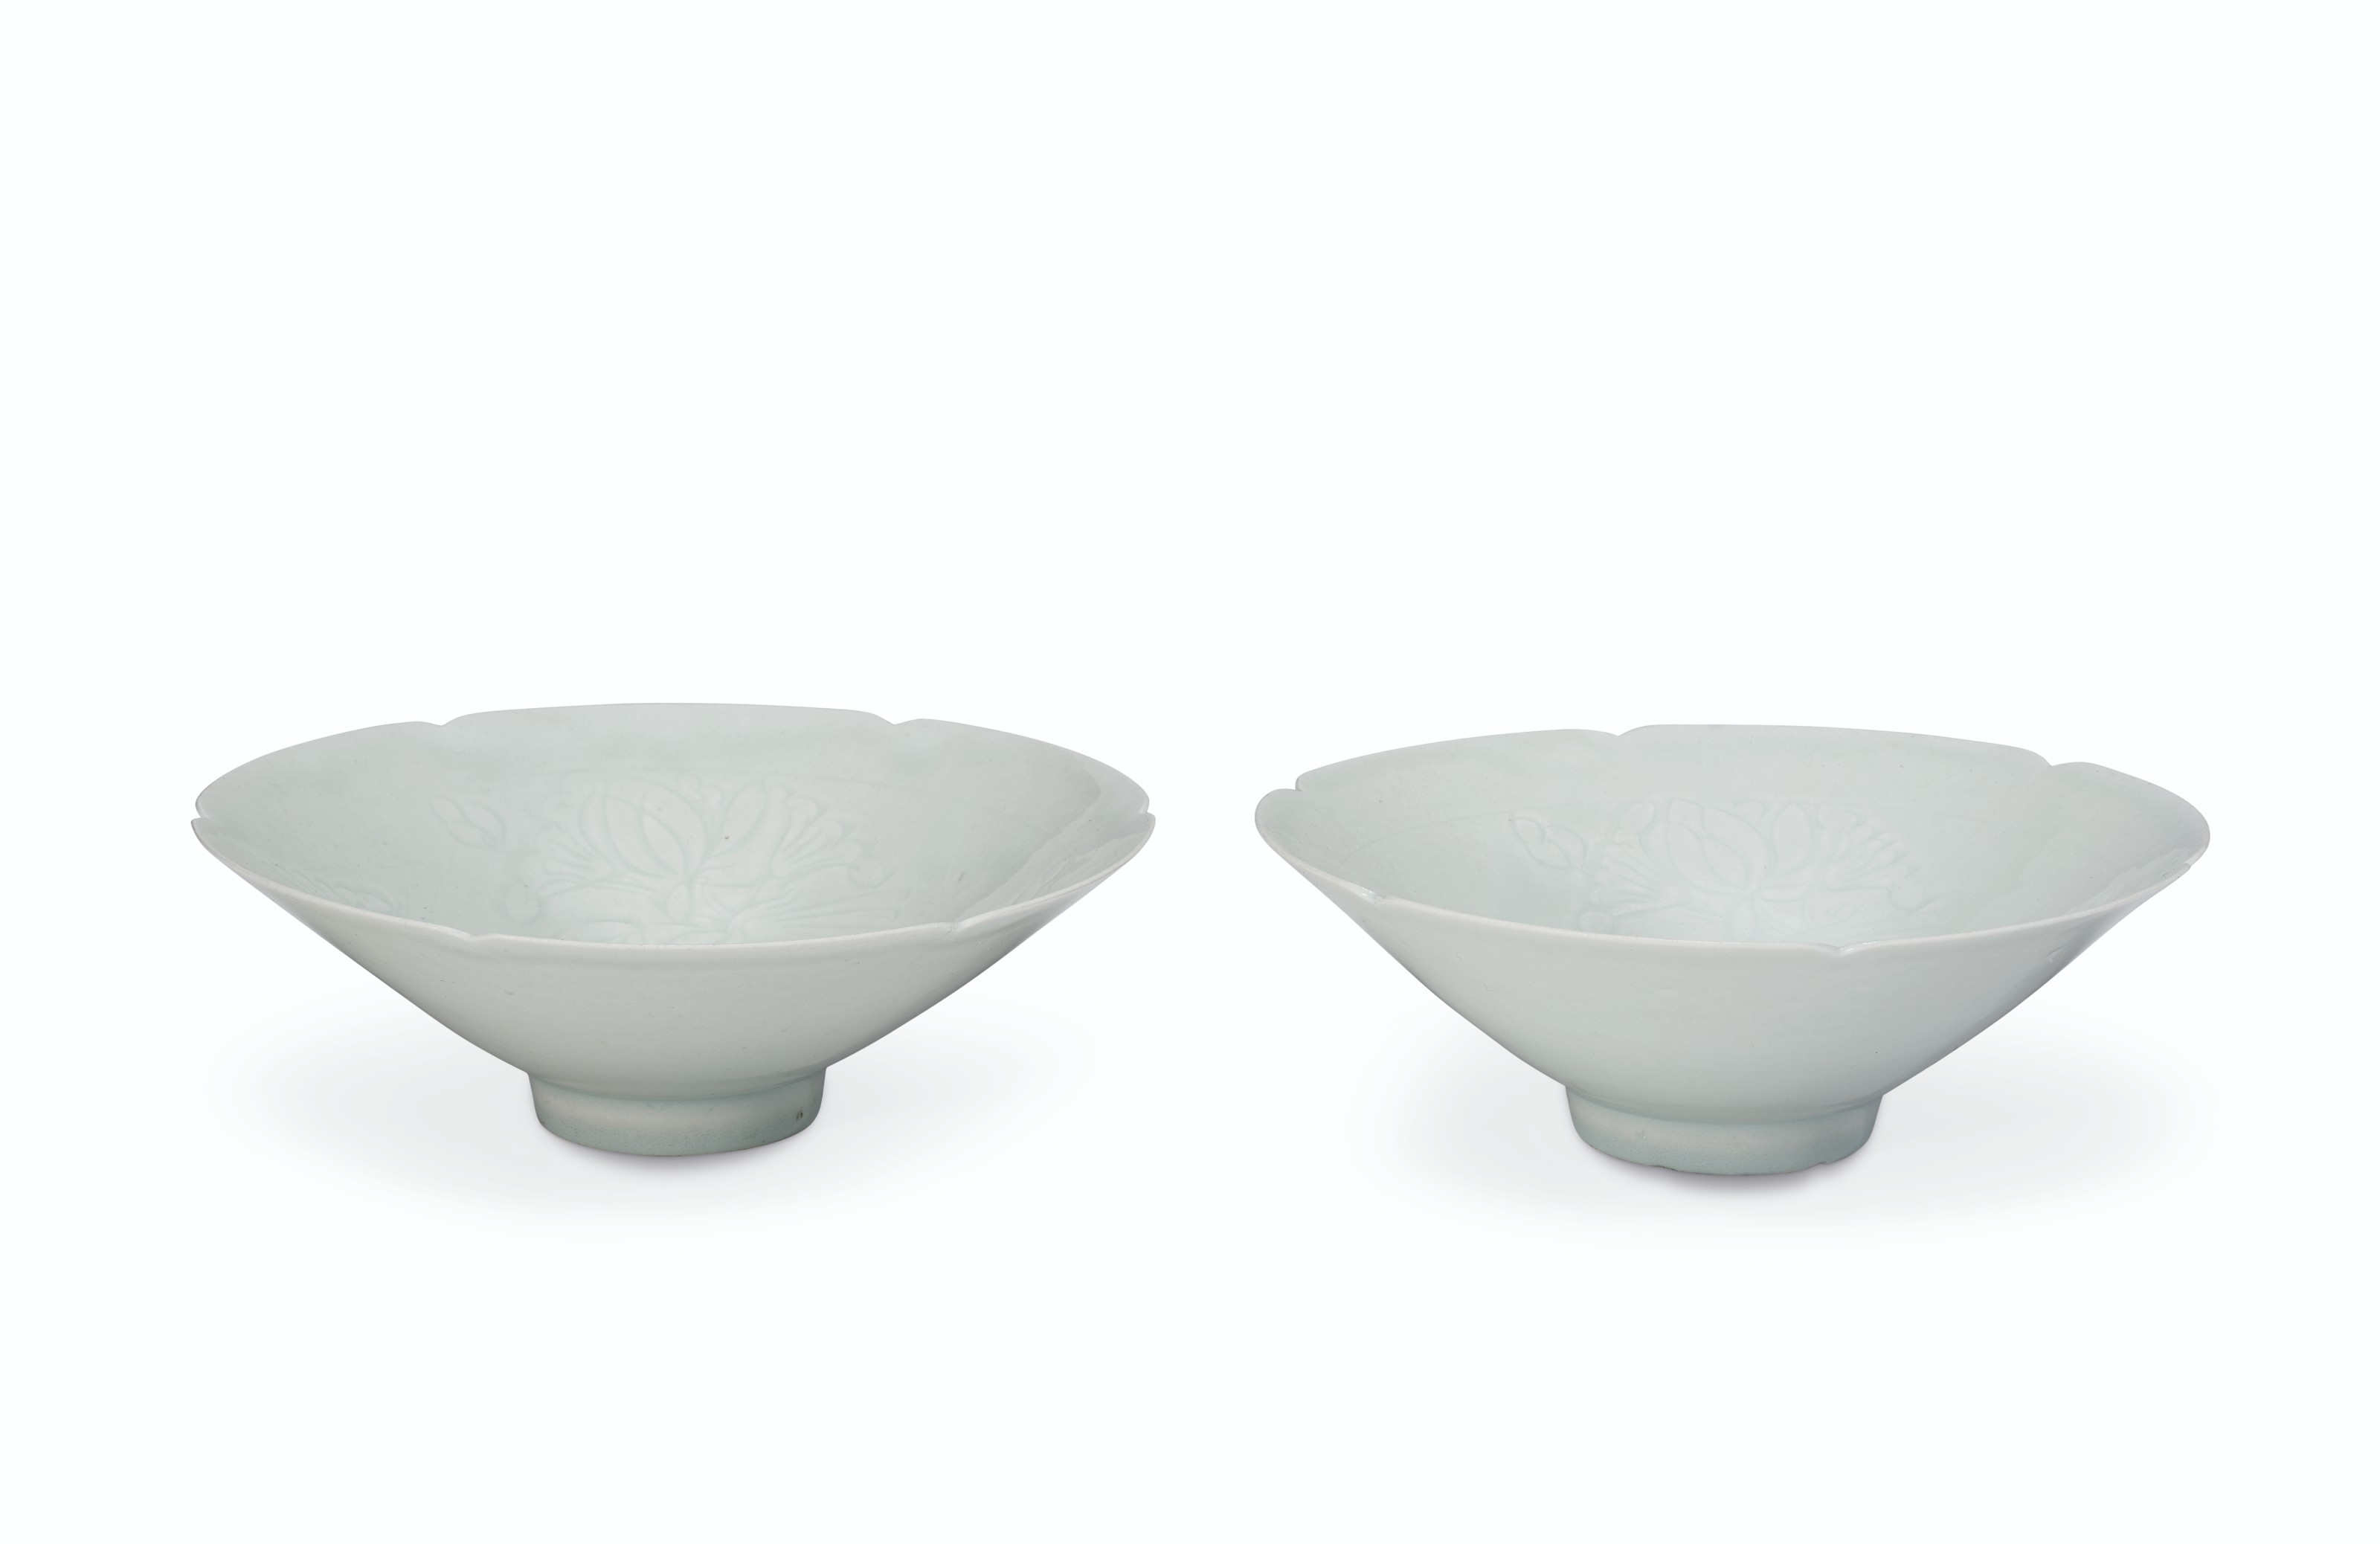 A PAIR OF CARVED QINGBAI BOWLS